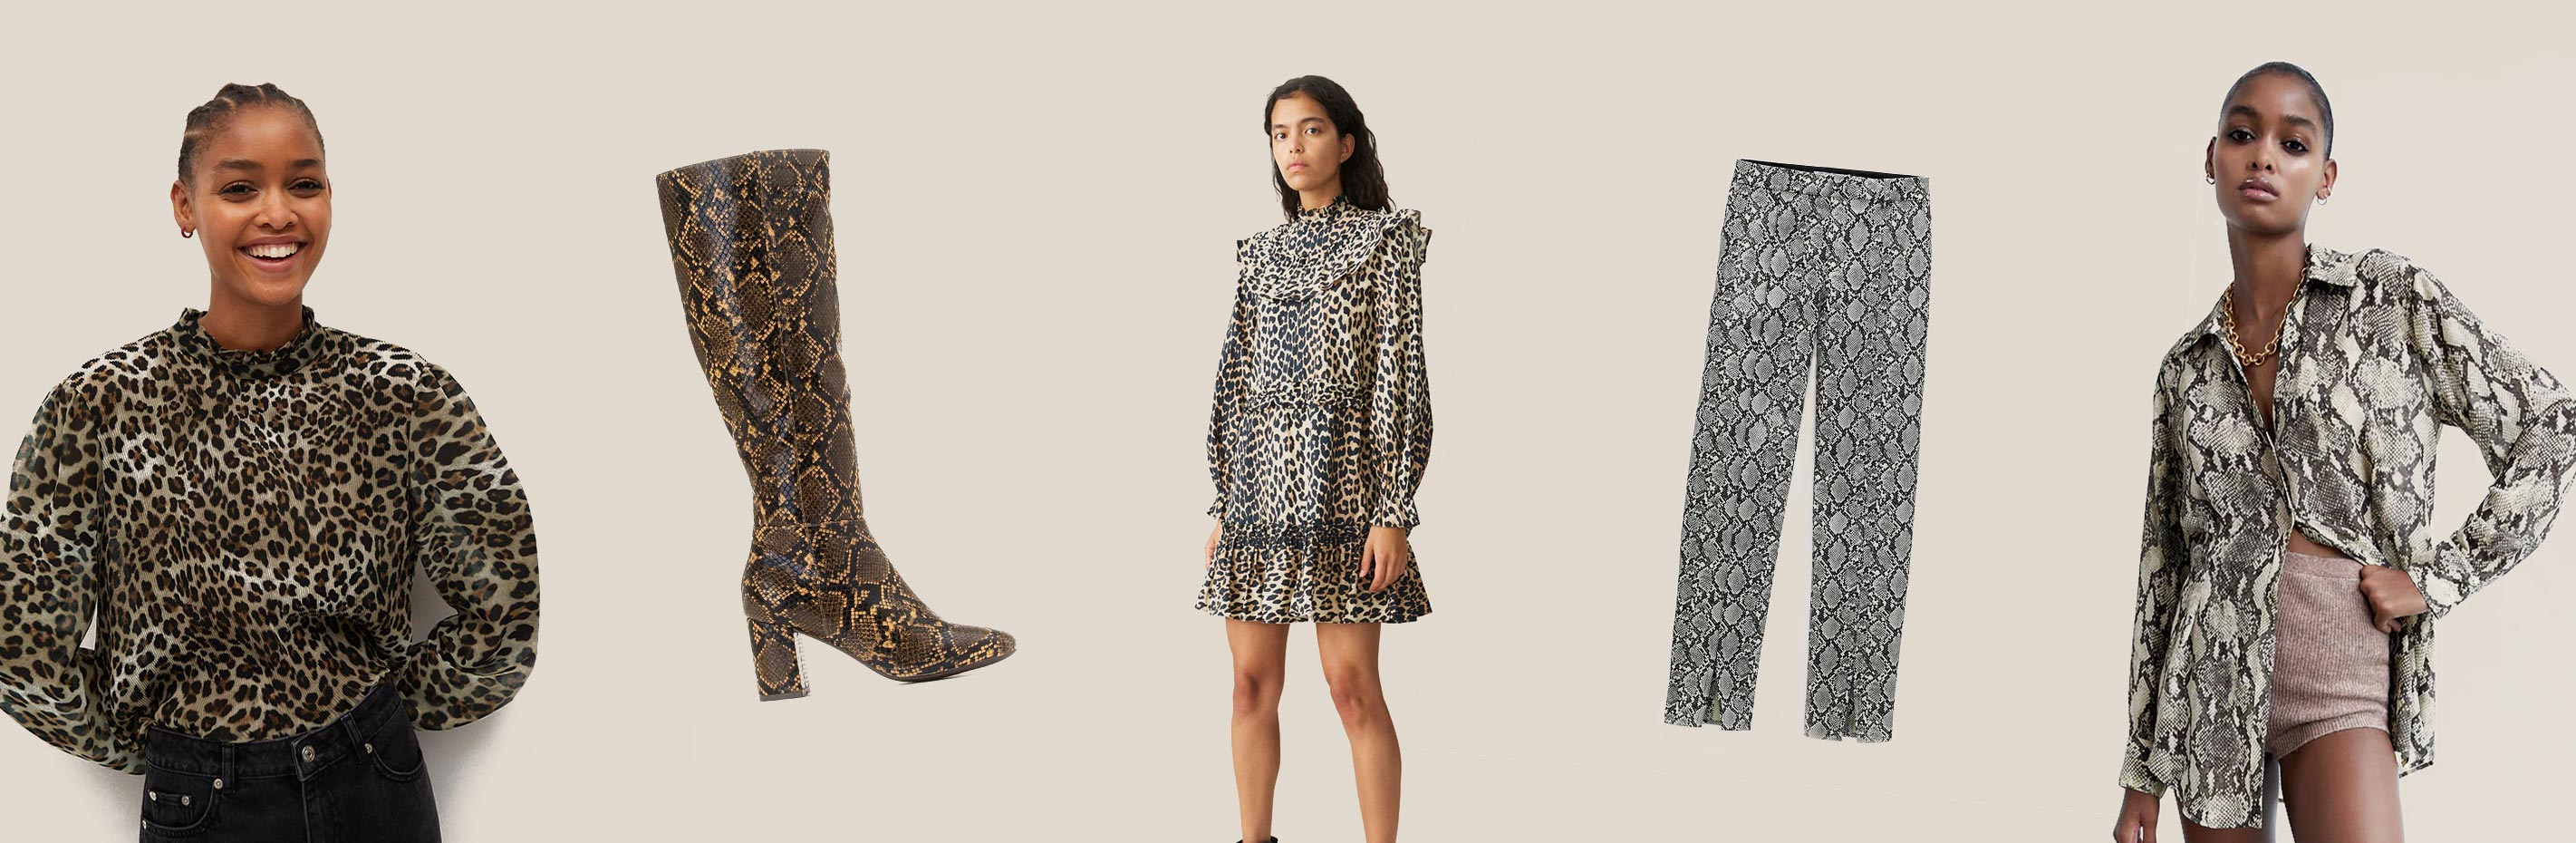 24 Animal Print Pieces to Instantly Upgrade Your Autumn/ Winter Wardrobe